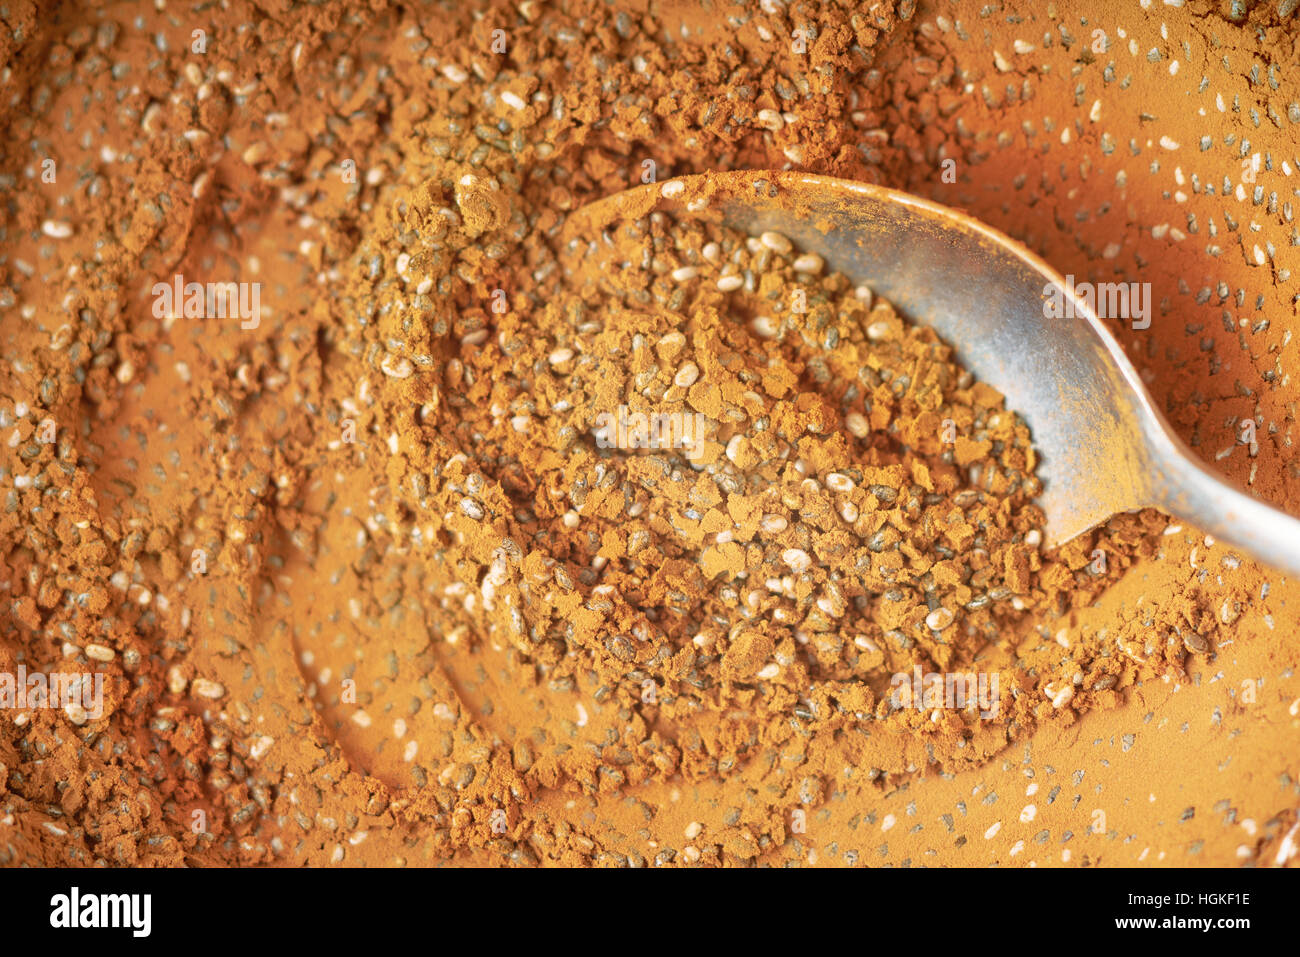 Cocoa powder and chia seeds mix with spoon background close-up - Stock Image